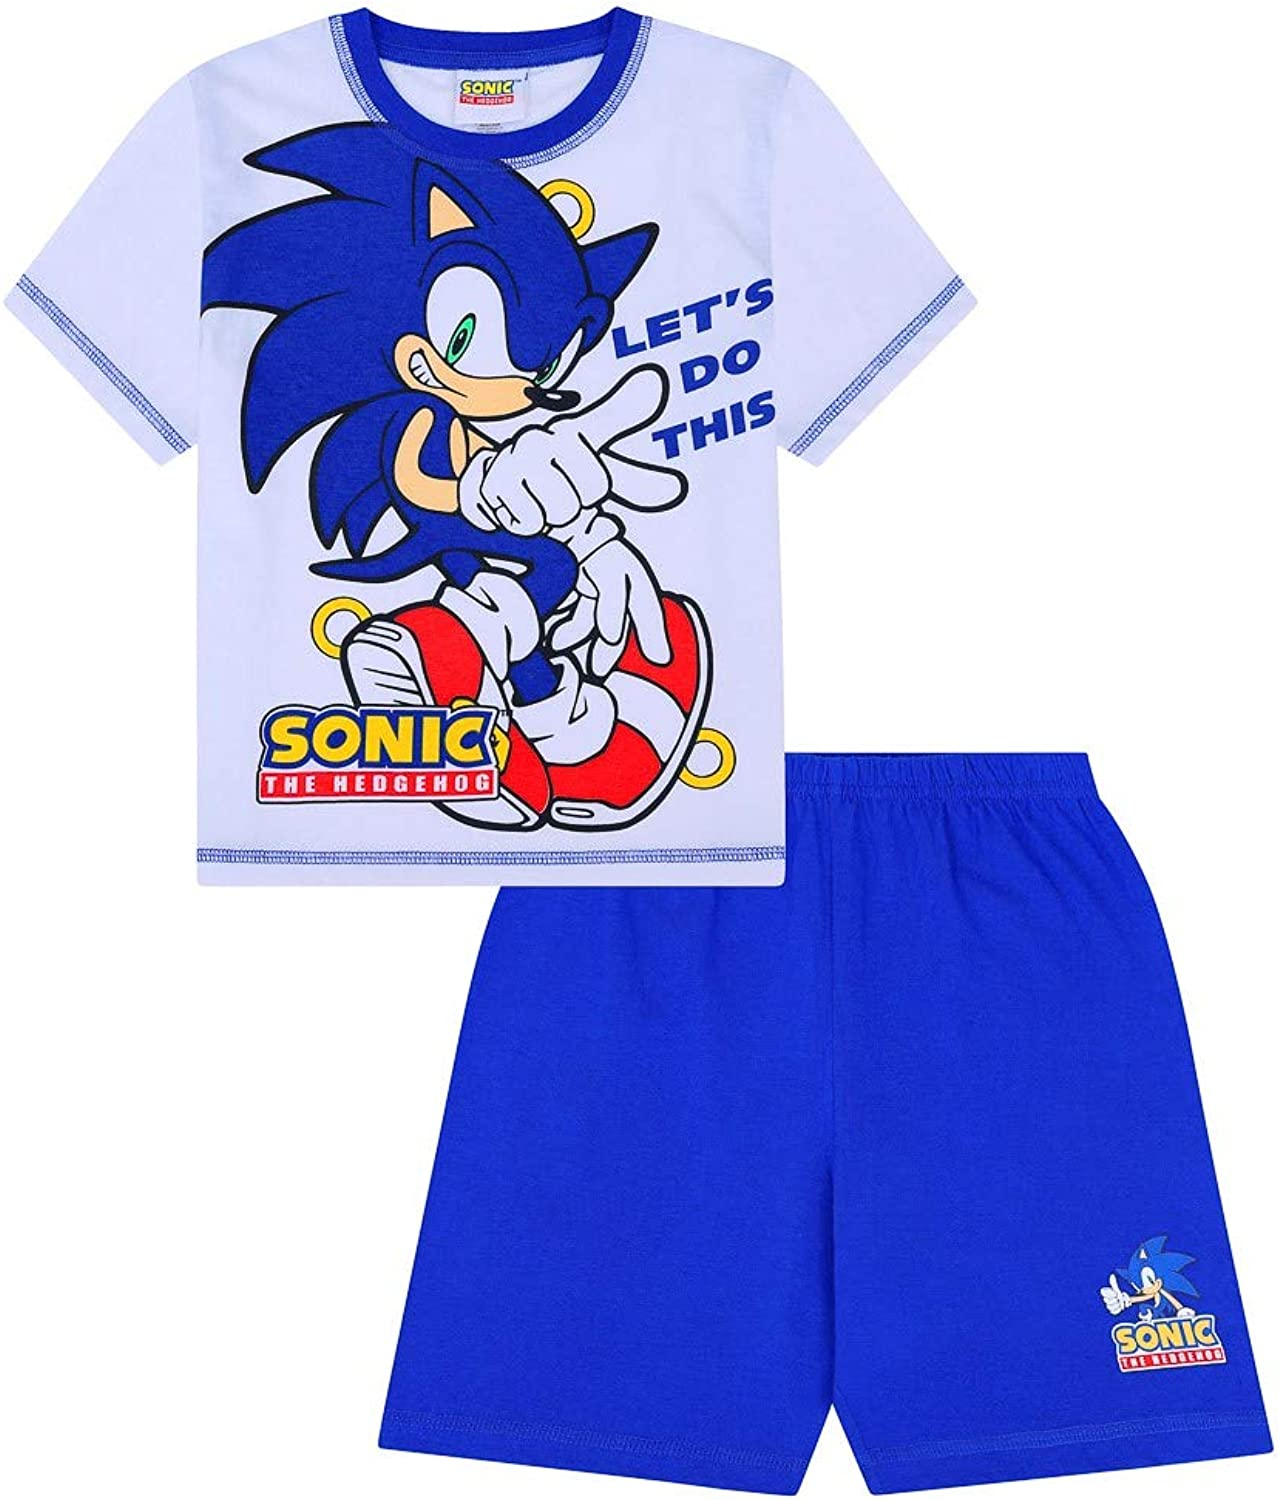 8-9 Years Sonic The Hedgehog Lets Do This Short Gamer Cotton PJs Boys White